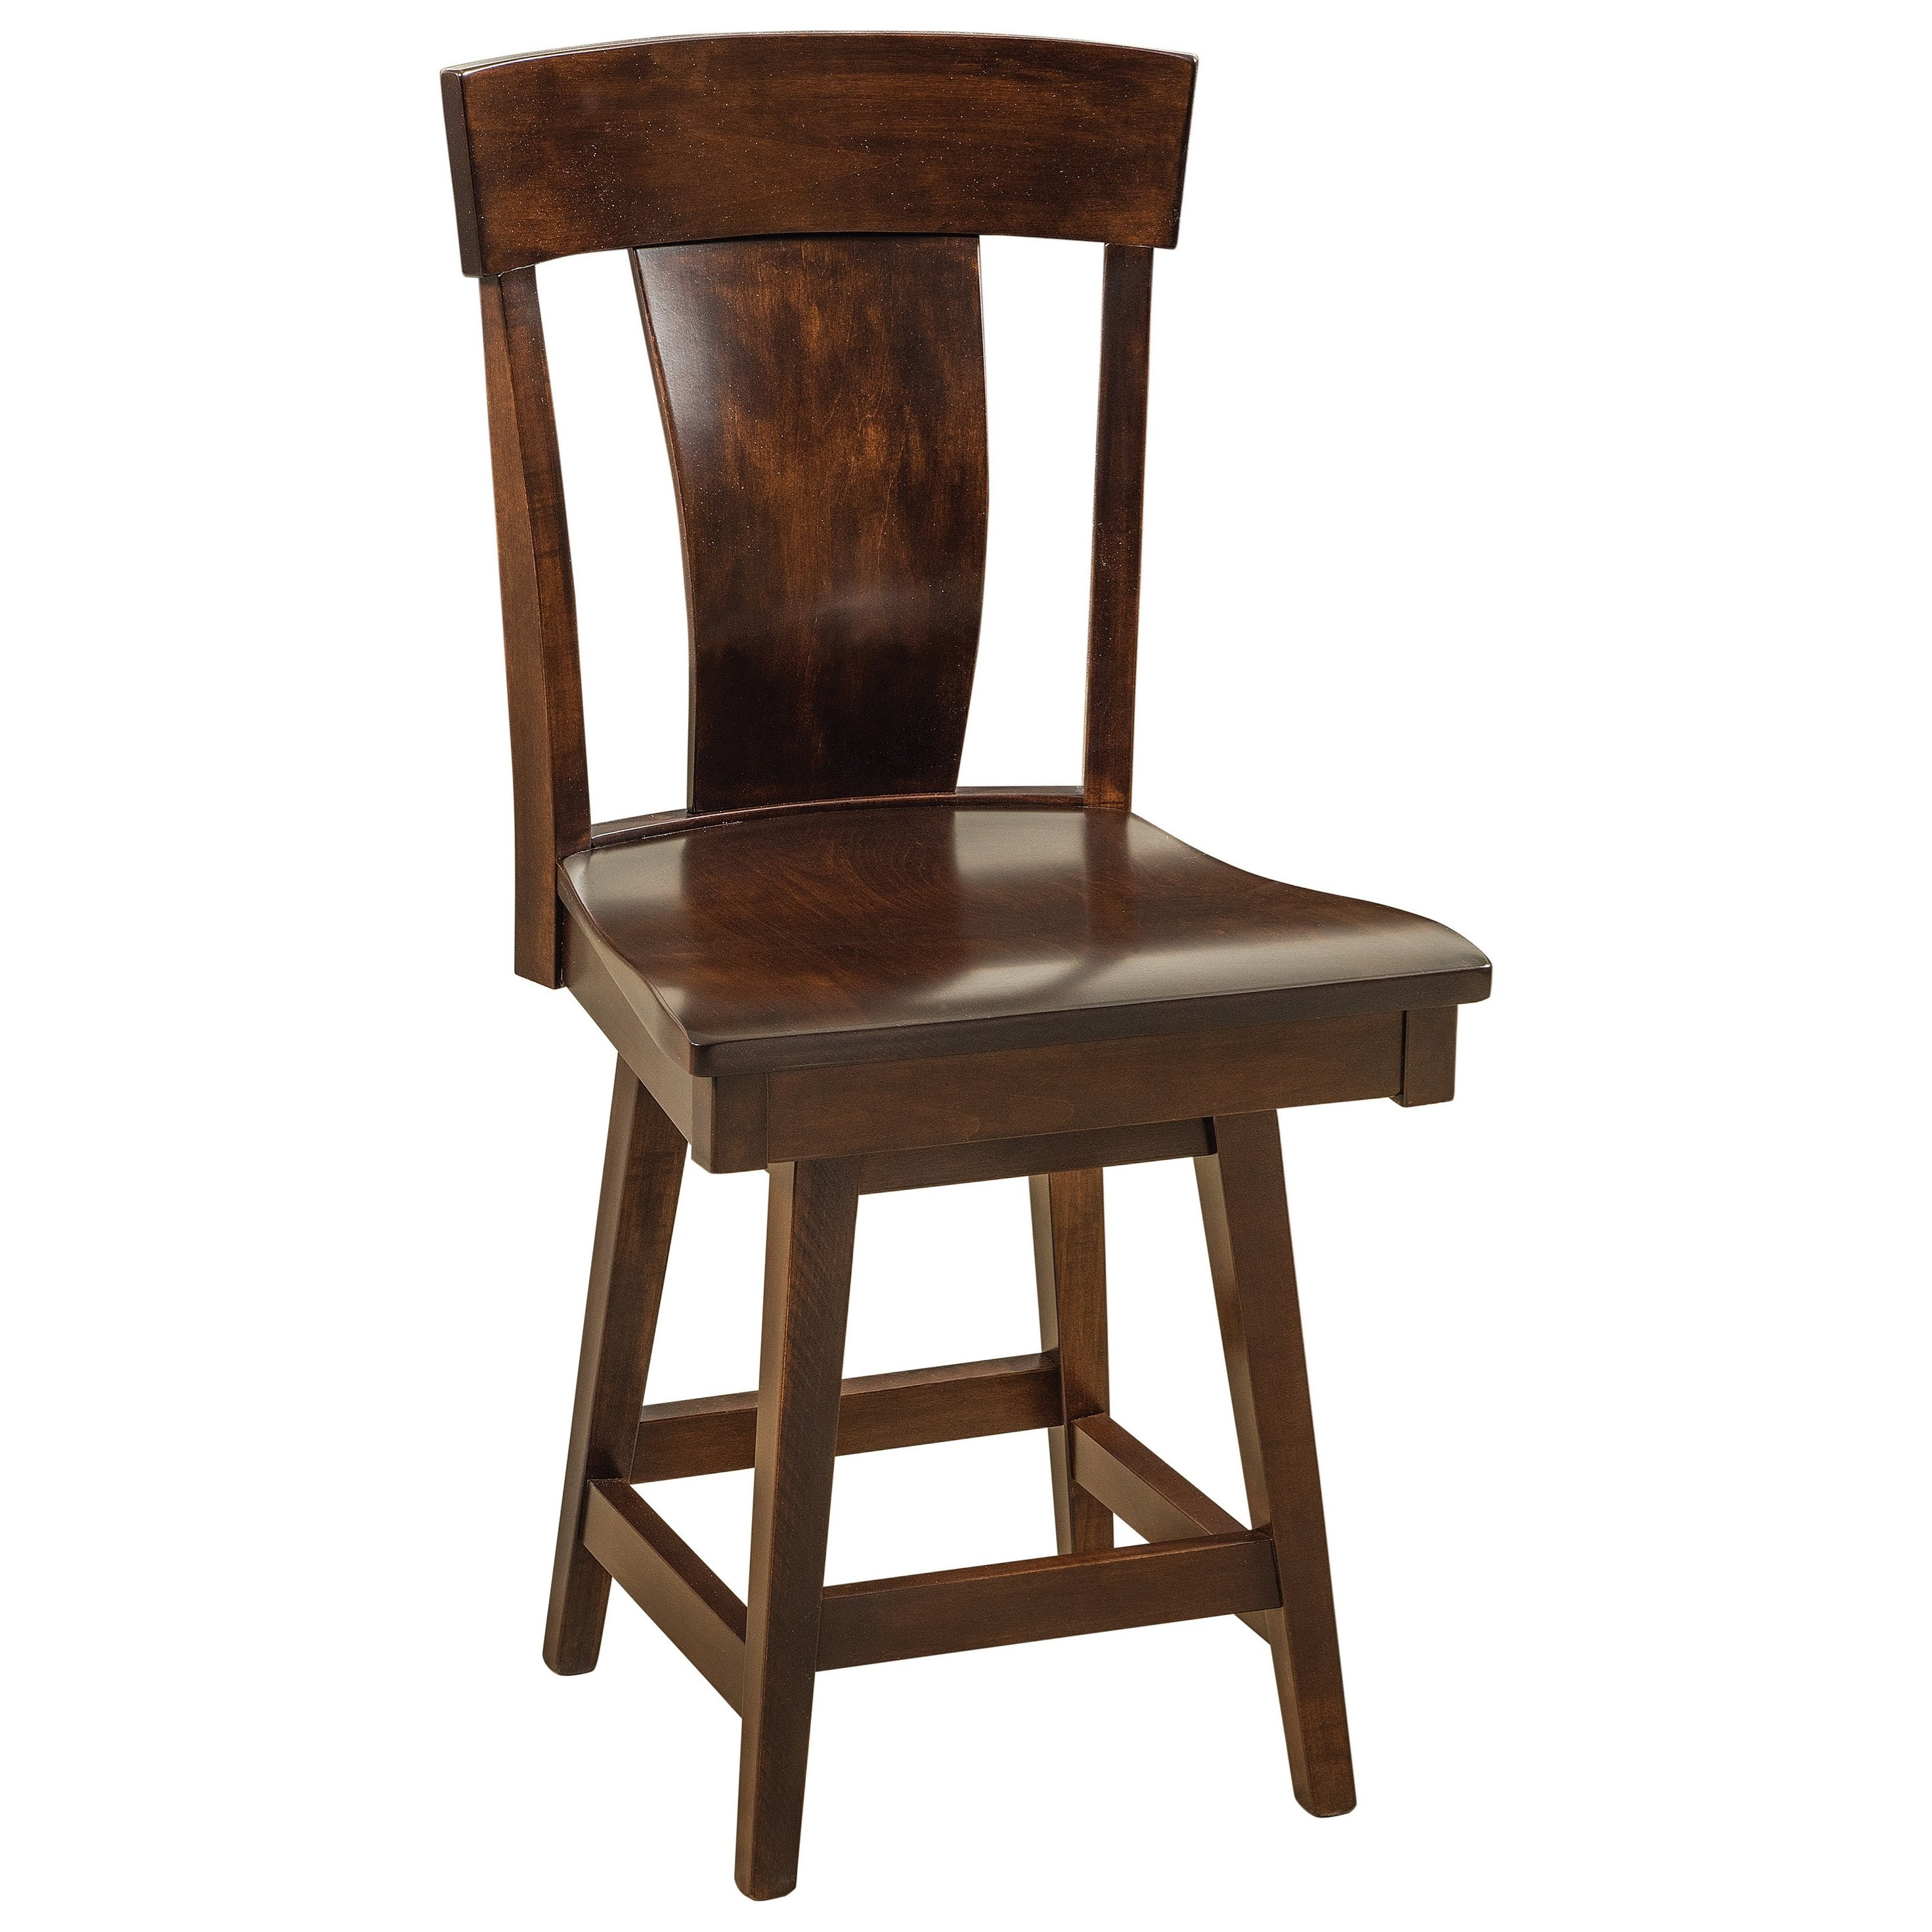 Baldwin Swivel Counter Height Stool - Fabric Seat by F&N Woodworking at Mueller Furniture